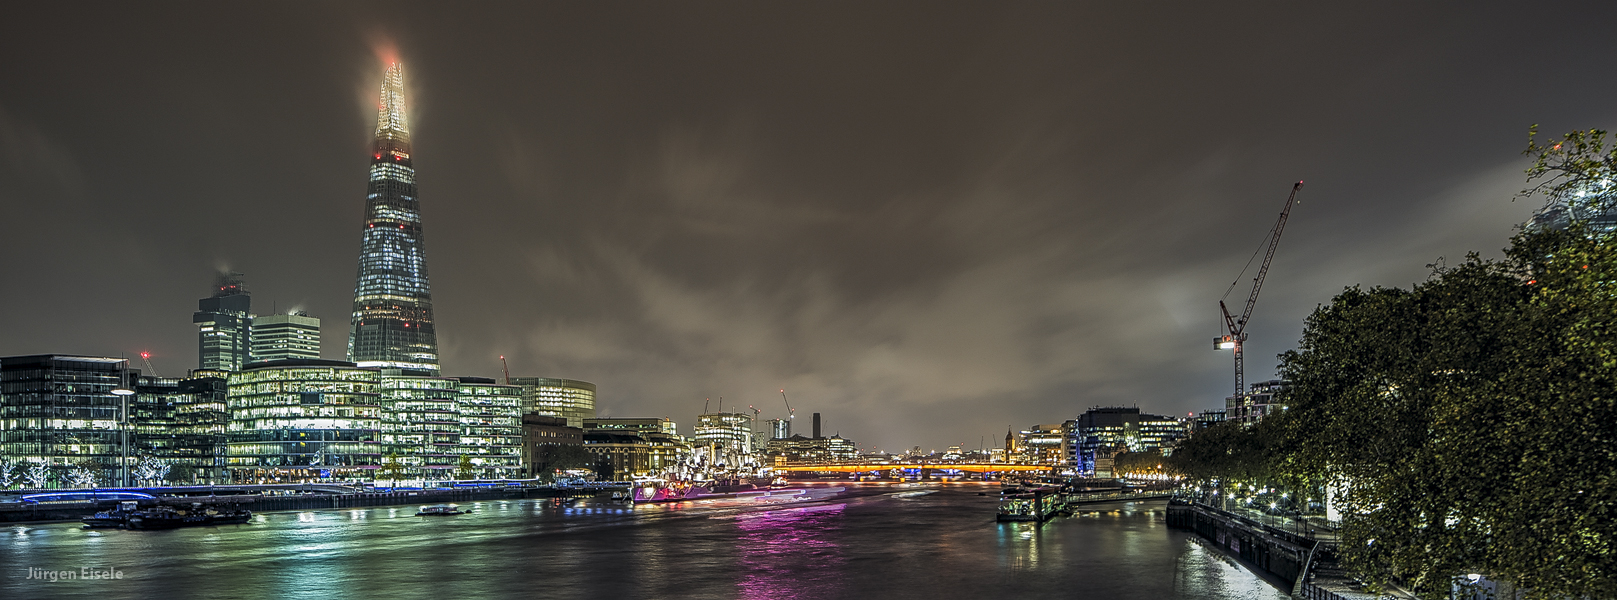 London Bridge Skyline | London, UK